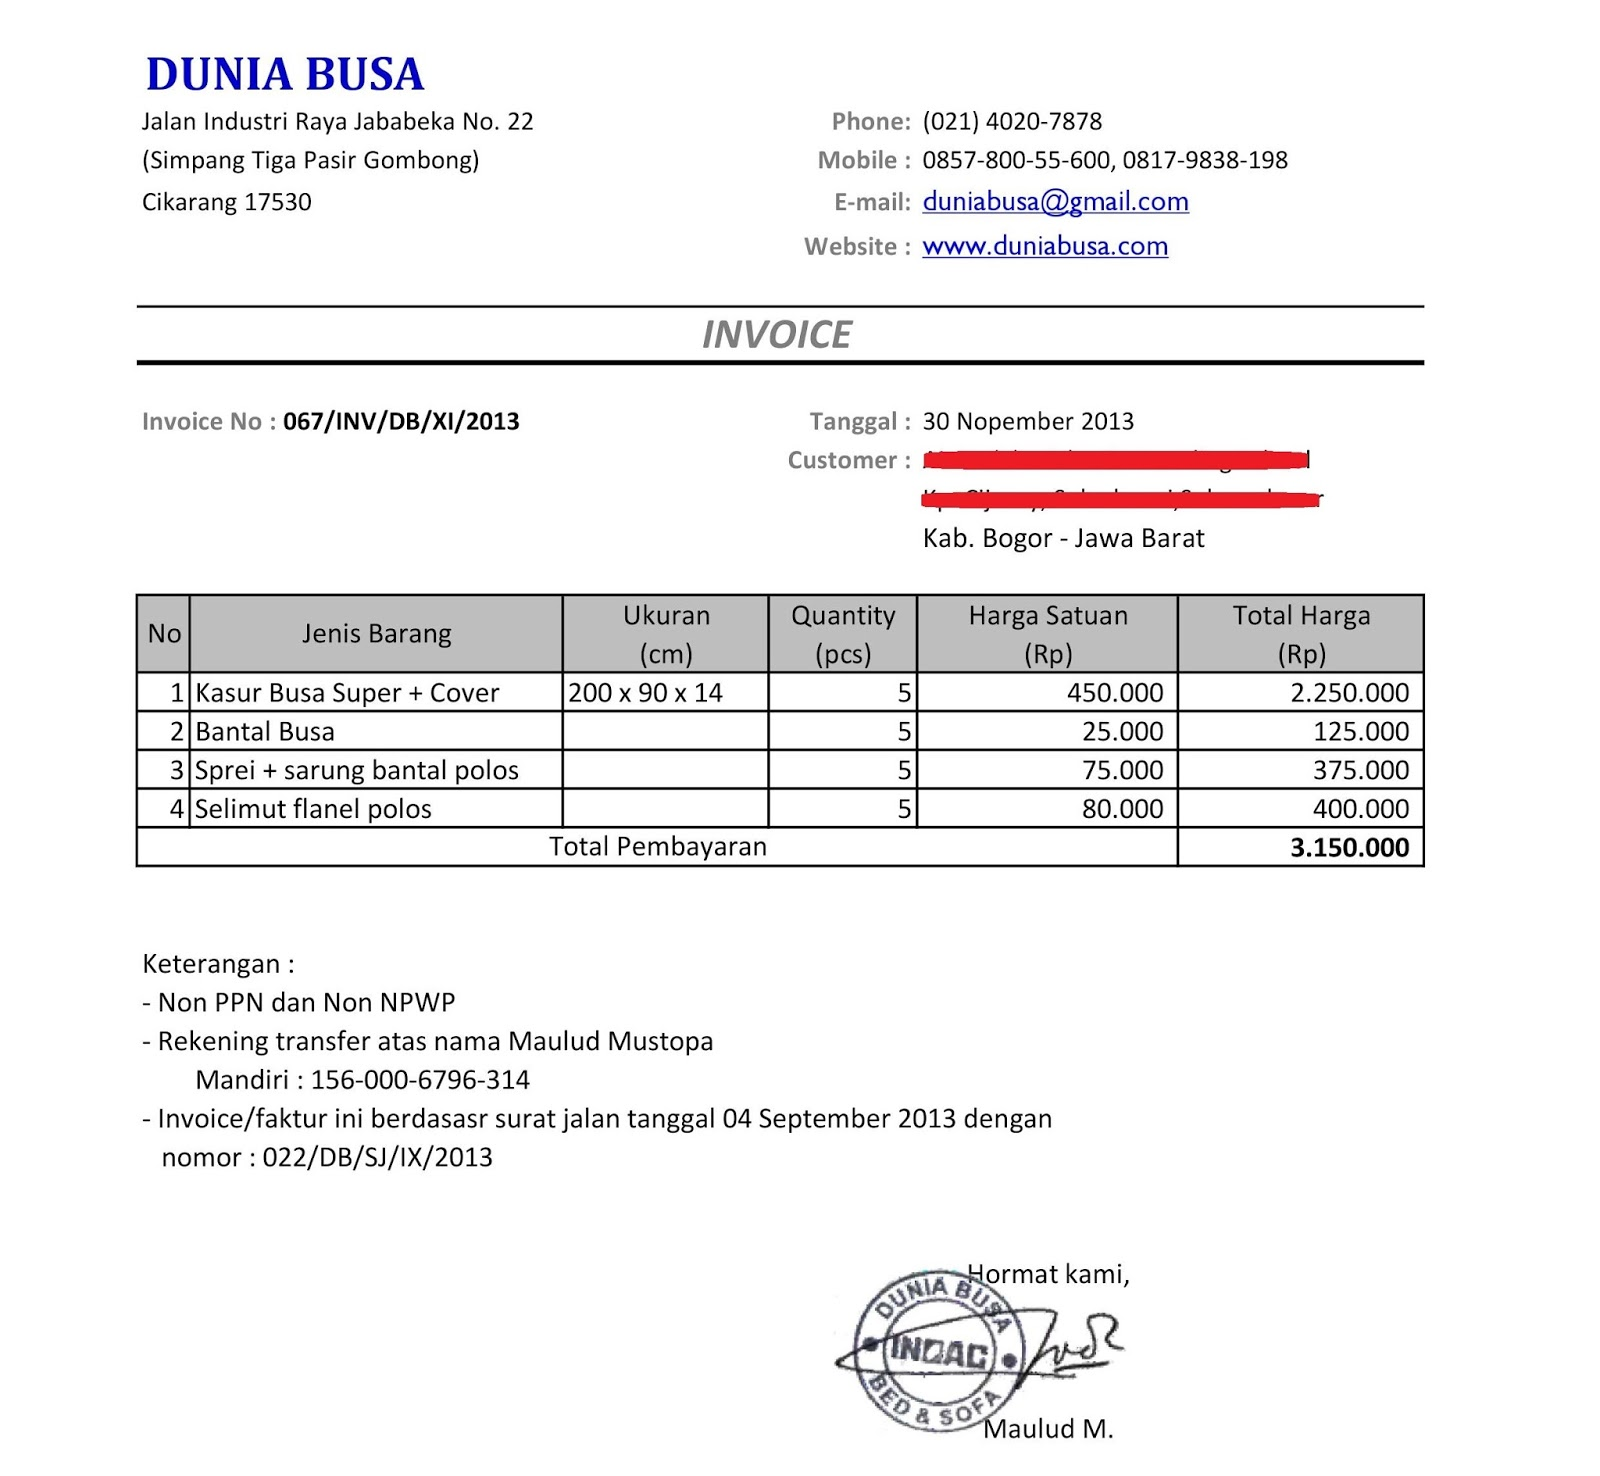 Aldiablosus  Unusual Free Invoice Online  Create Invoice Online  Invoice Template  With Fascinating Contoh Format Invoice Atau Surat Tagihan  Brankas Arsip  Free Invoice Online With Enchanting Repair Invoice Template Also Send Invoice Online In Addition Blank Printable Invoice And Home Invoice As Well As How To Find Car Invoice Price Additionally Invoice Billing From Sklepco With Aldiablosus  Fascinating Free Invoice Online  Create Invoice Online  Invoice Template  With Enchanting Contoh Format Invoice Atau Surat Tagihan  Brankas Arsip  Free Invoice Online And Unusual Repair Invoice Template Also Send Invoice Online In Addition Blank Printable Invoice From Sklepco